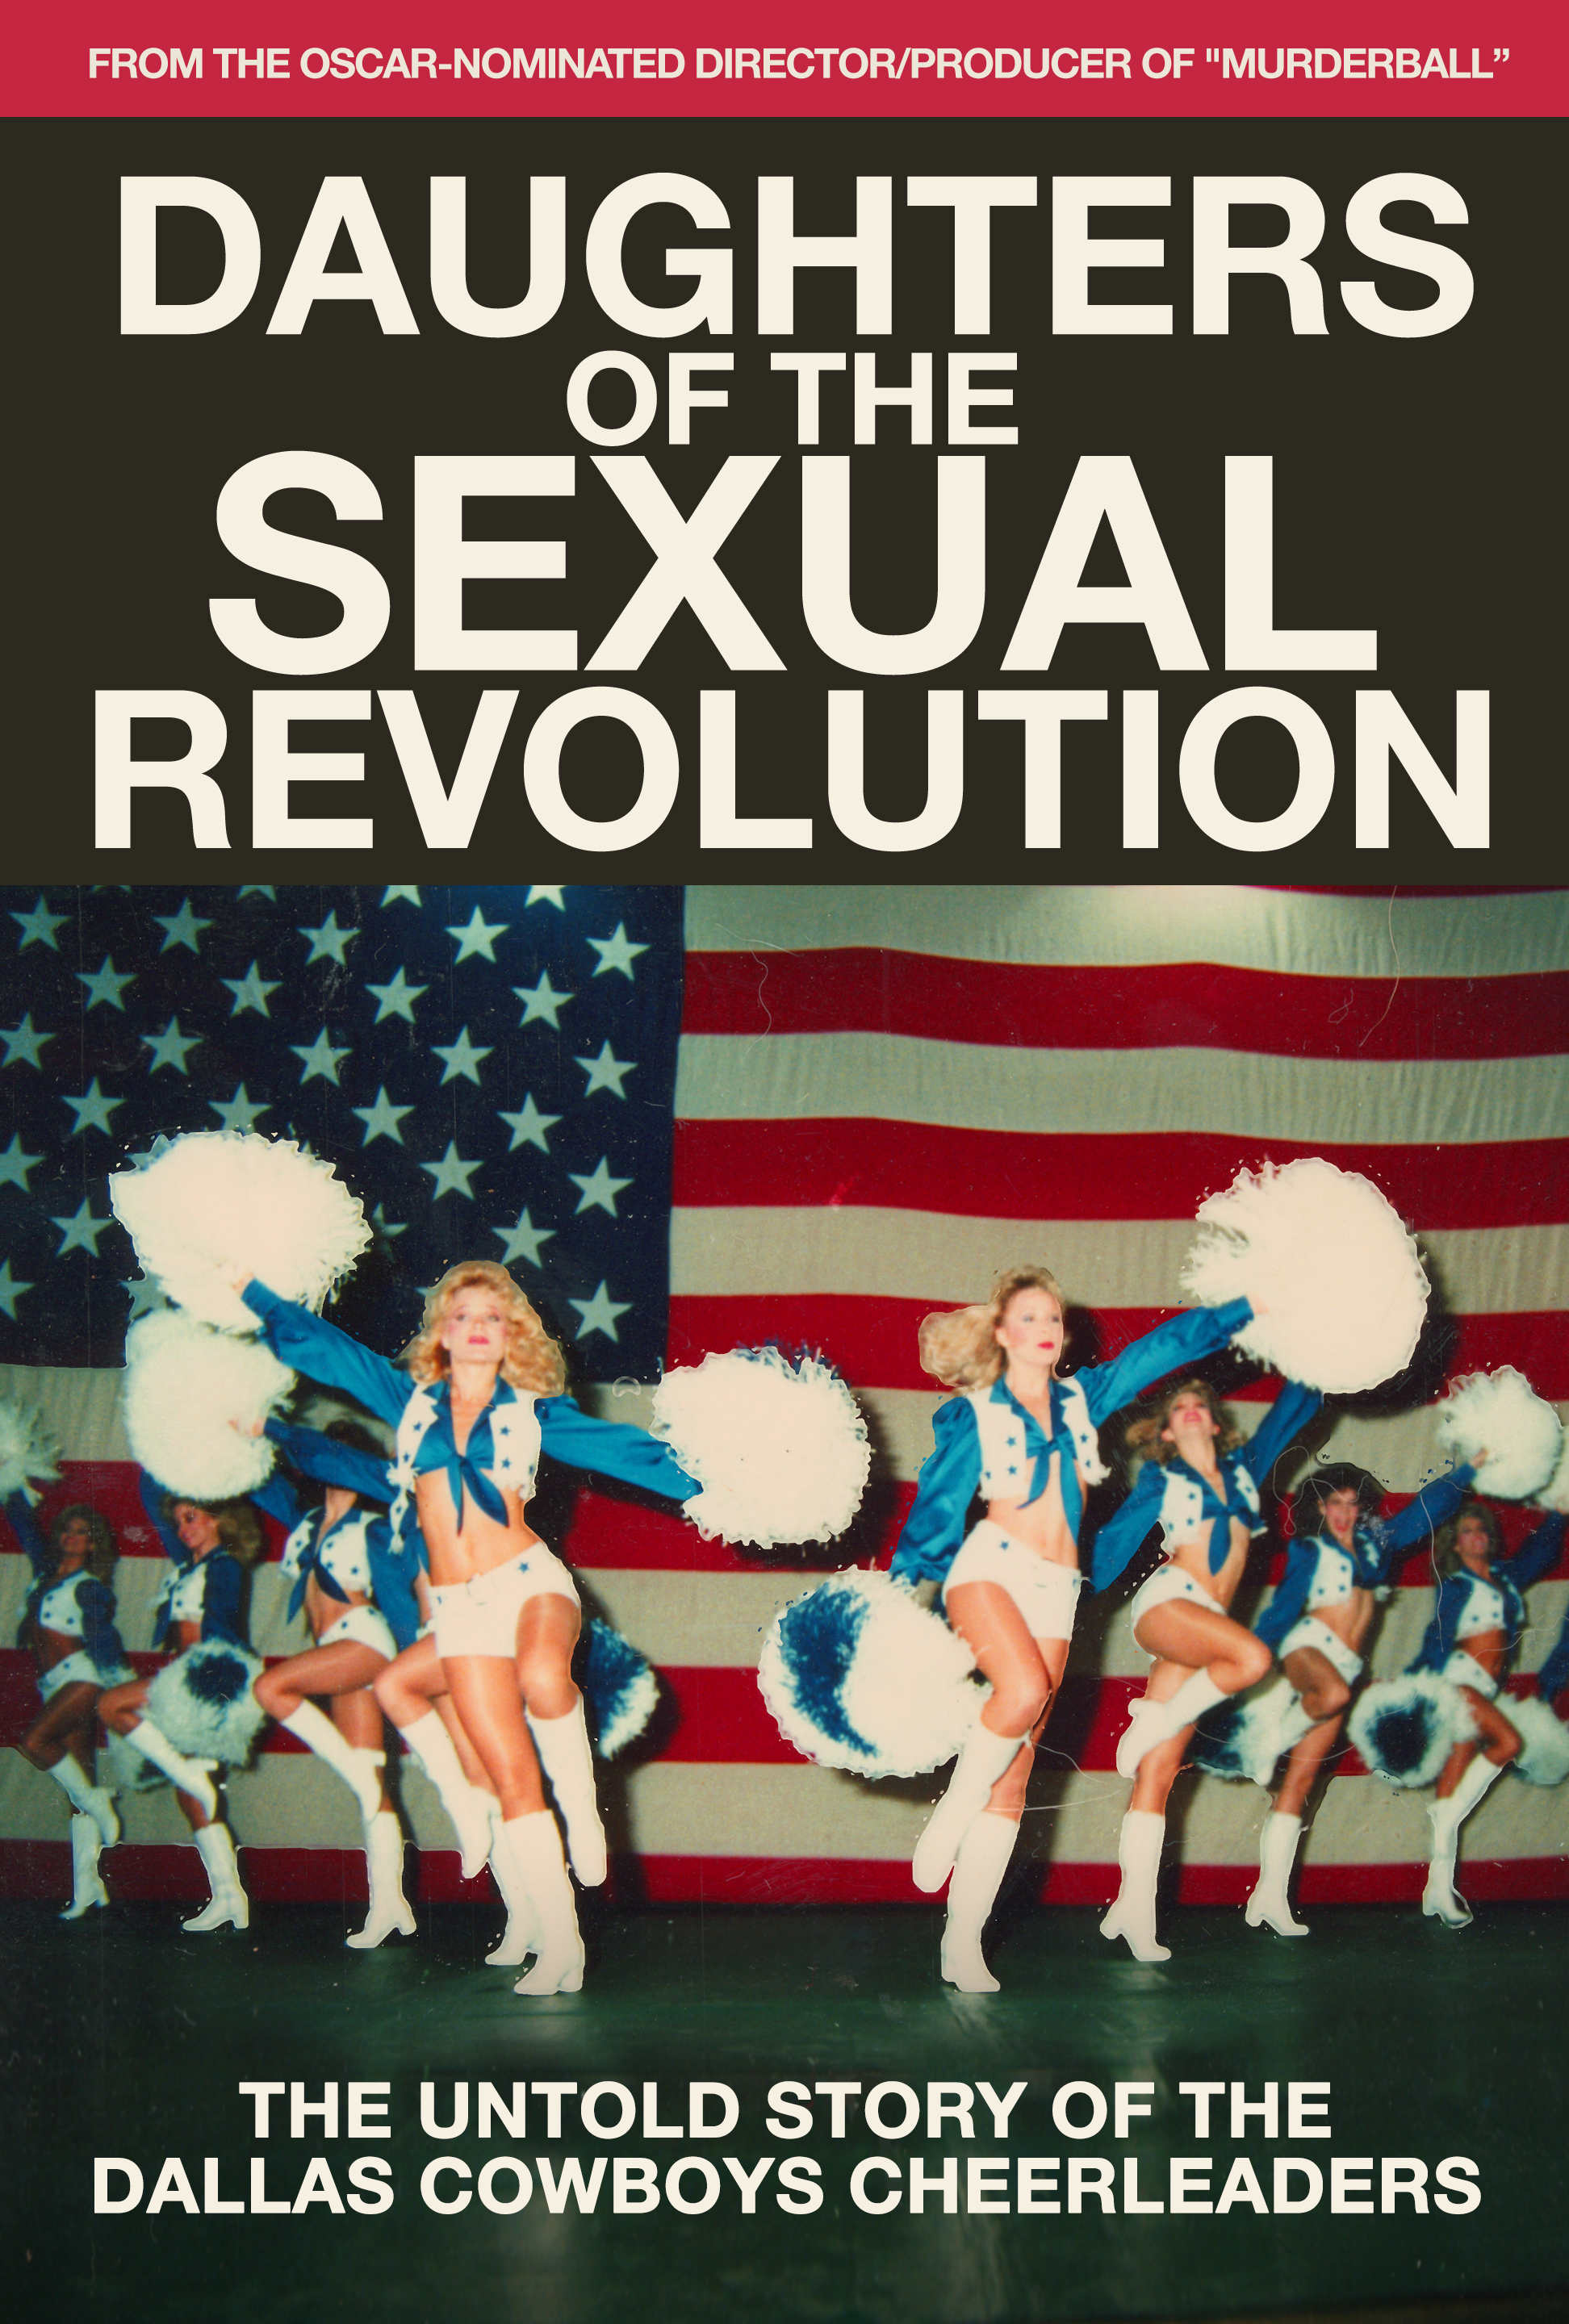 93f4ddd51 Daughters of the Sexual Revolution  The Untold Story of the Dallas Cowboys  Cheerleaders (2018)